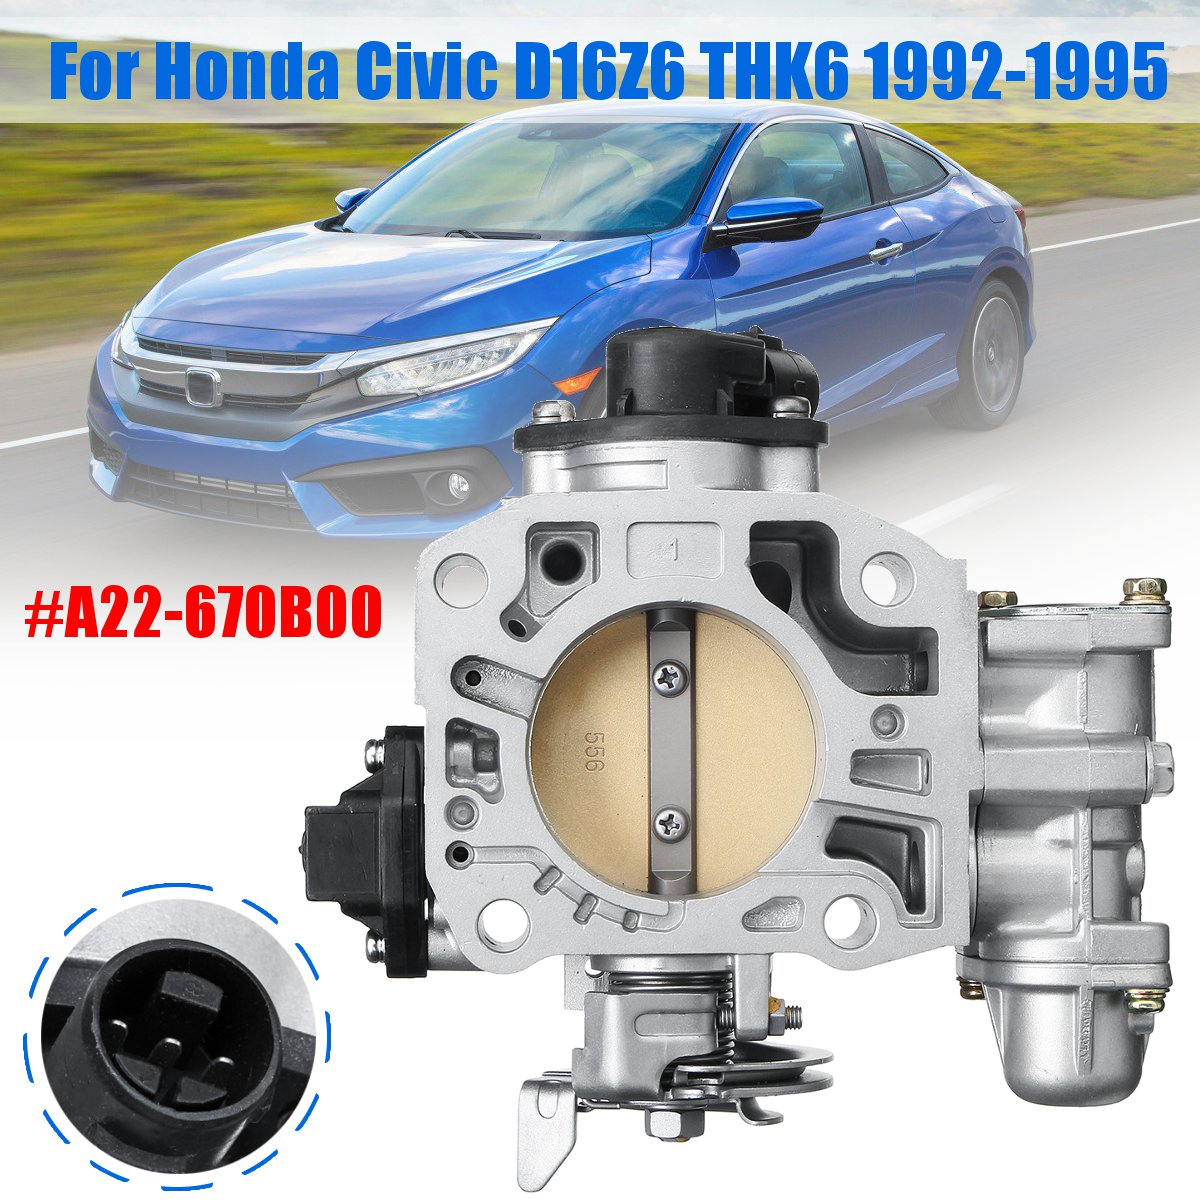 3 Pins Throttle Body Assembly For Honda FOR Civic D16Z6 THK6 1992 1993 1994  1995 A22-670B00